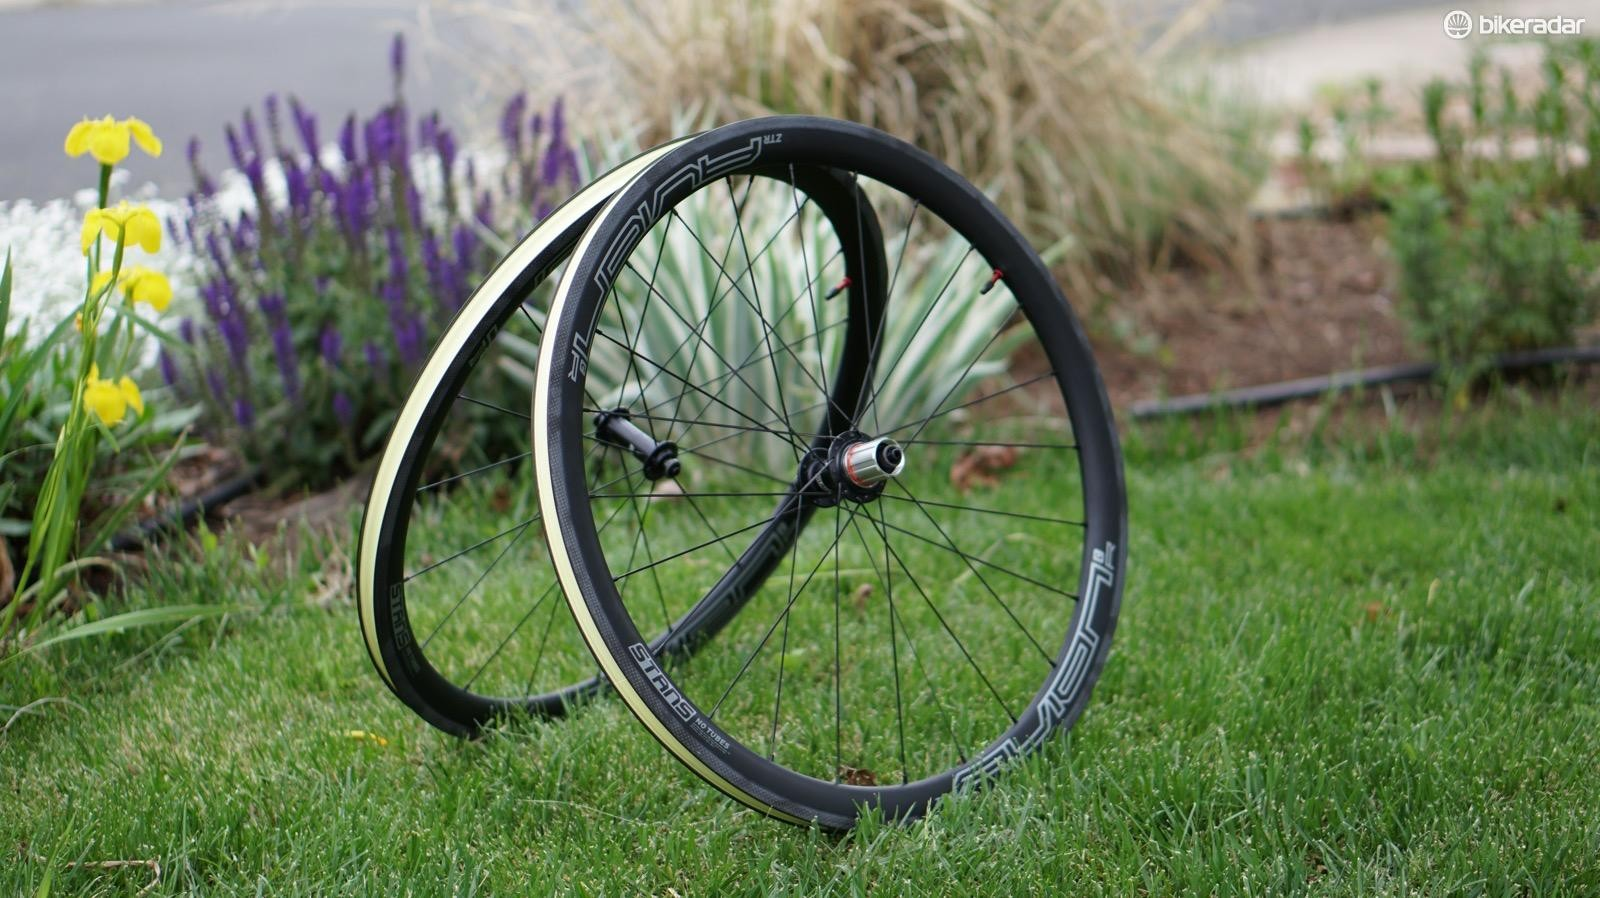 Stan's Avion R wheels are tubeless carbon clinchers